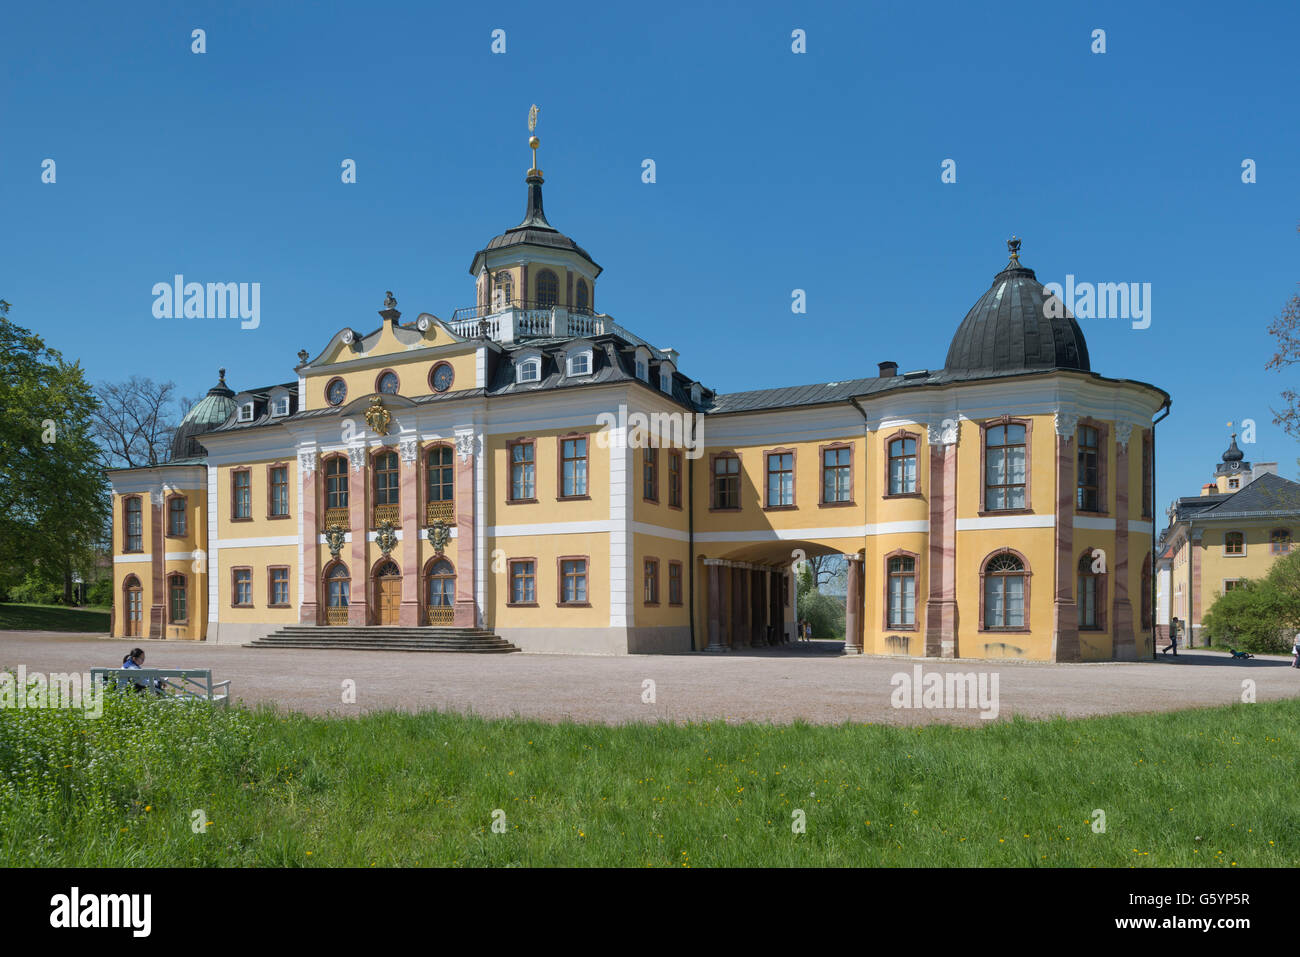 Belvedere, nowadays the Museum of Arts and Crafts, UNESCO World Heritage Site, Weimar, Thuringia, Germany - Stock Image